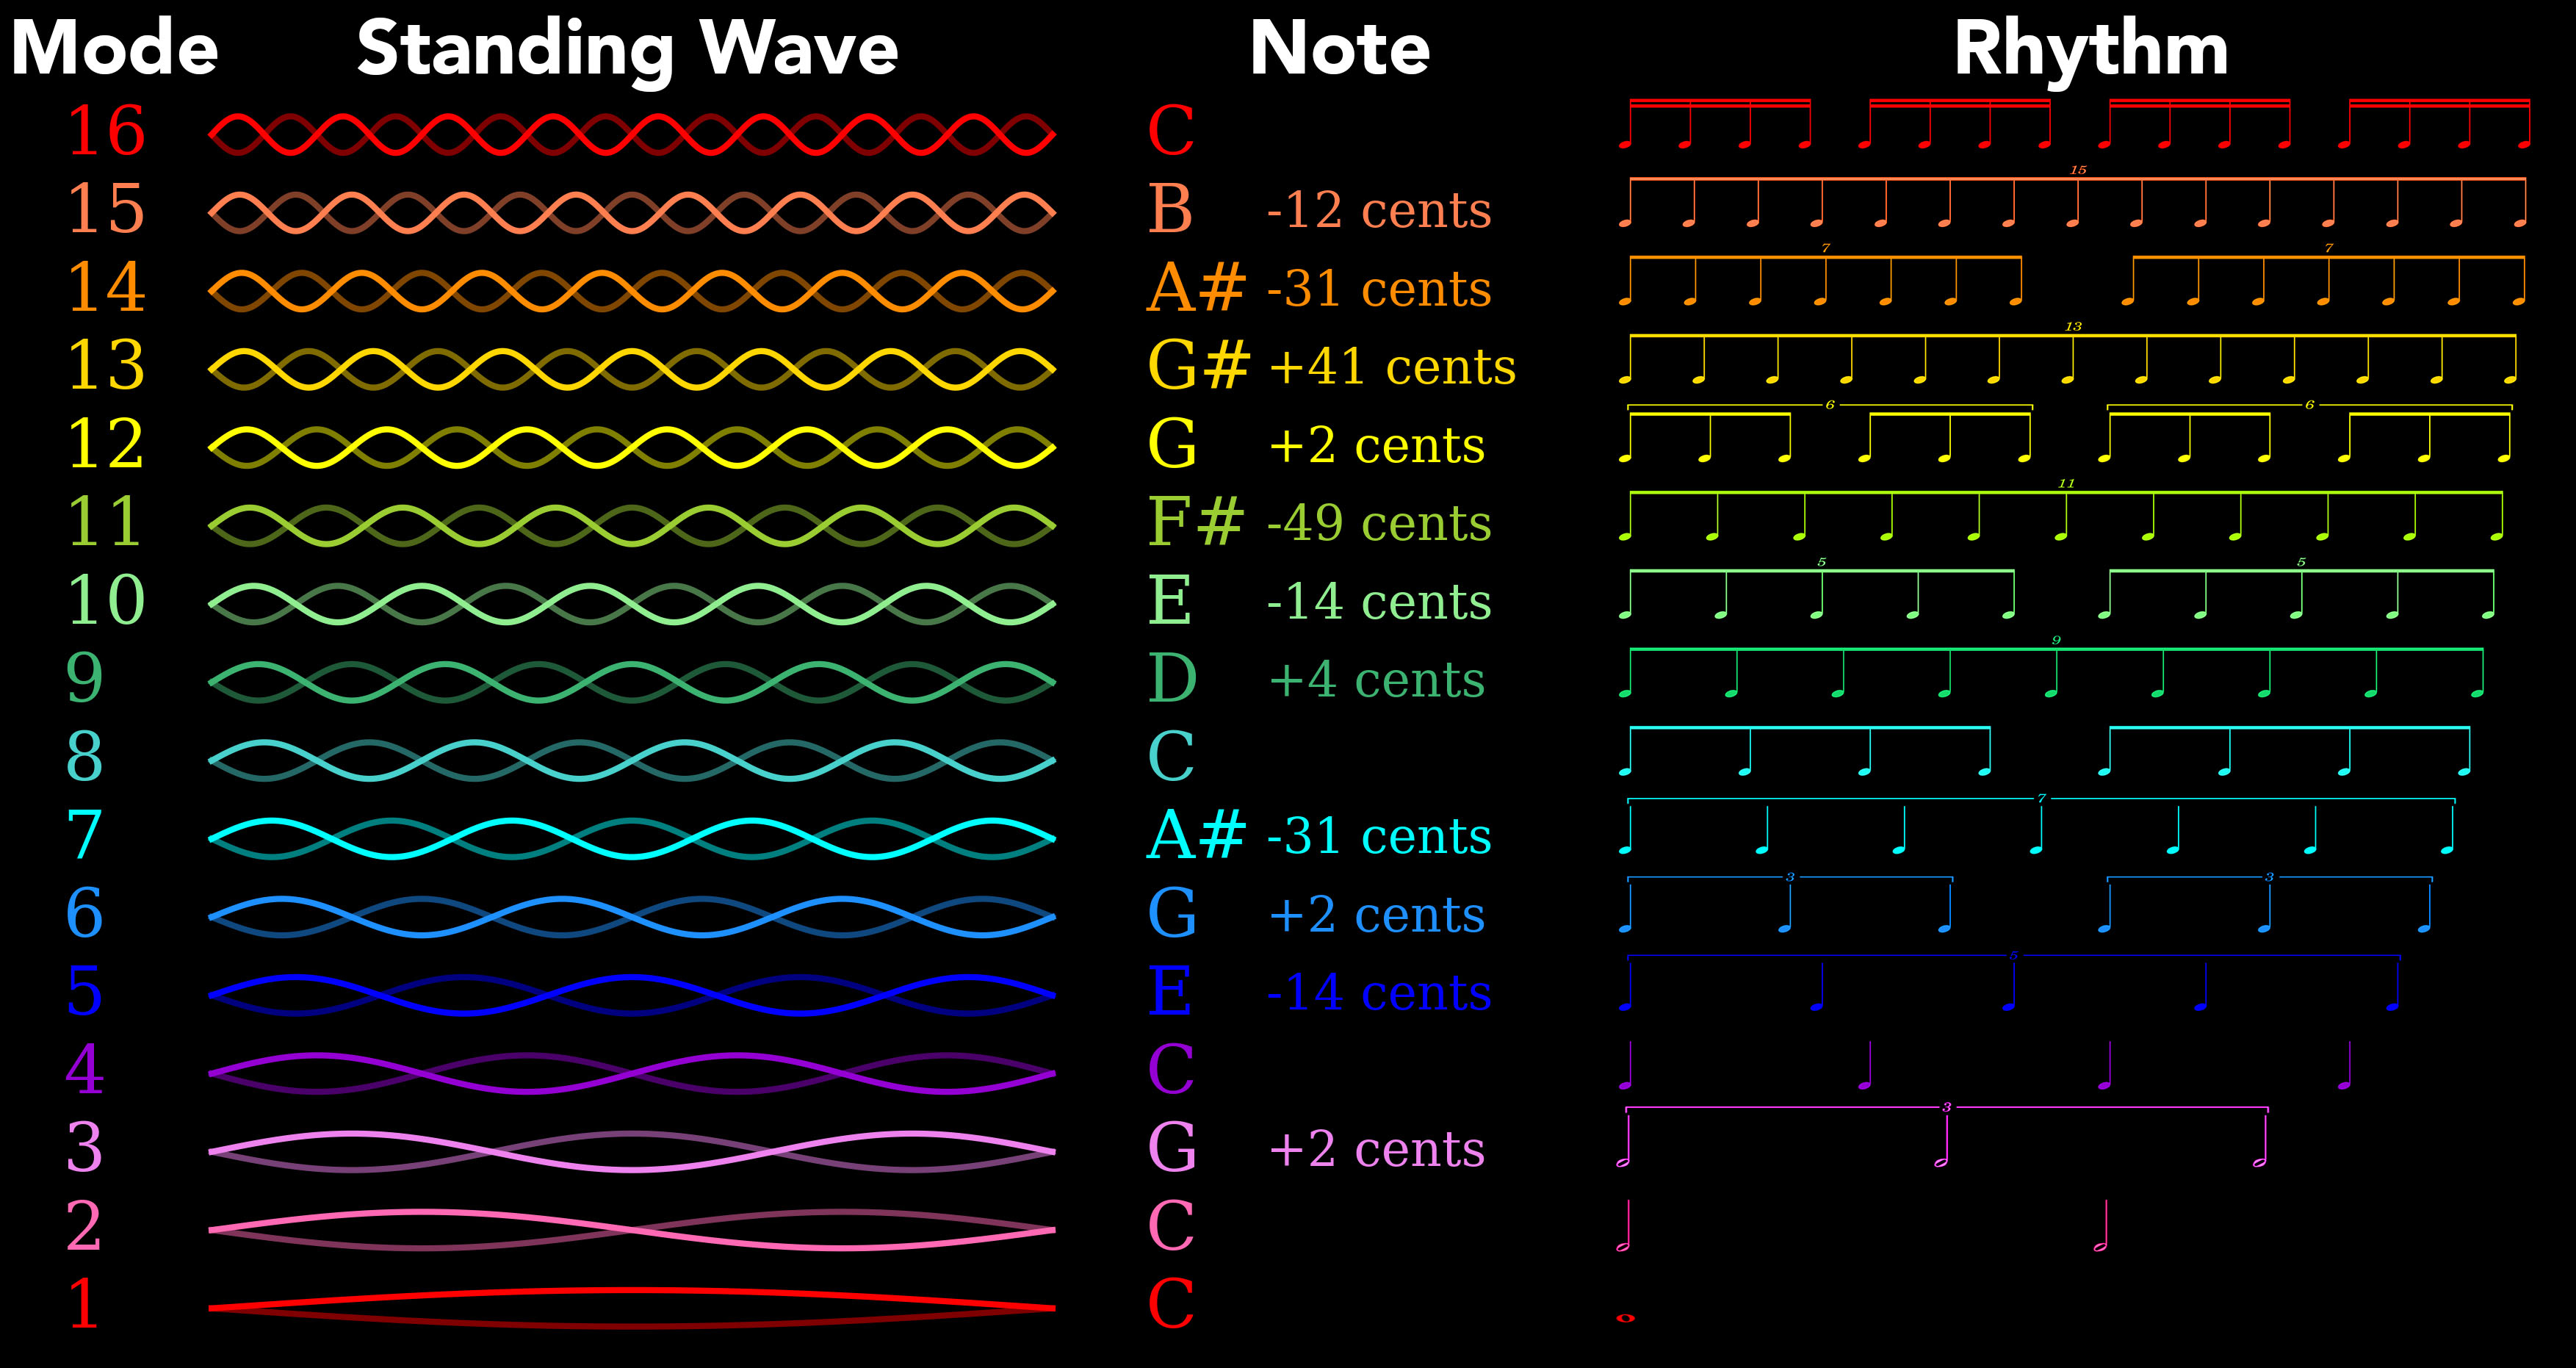 The first 16 modes of the harmonic series as standing waves, musical notes, and rhythms. The notes of the harmonic series deviate from the 'equal tempered' notes found on a piano (1 cent = 1 per cent of a note).